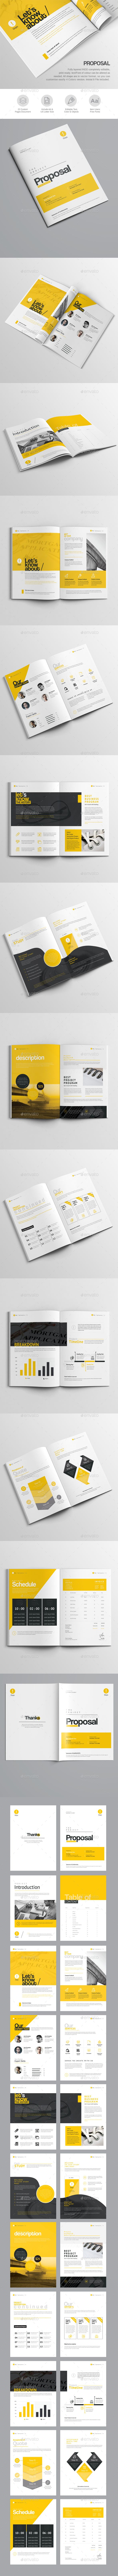 Proposal Template by artBeta File Information This File open is ...